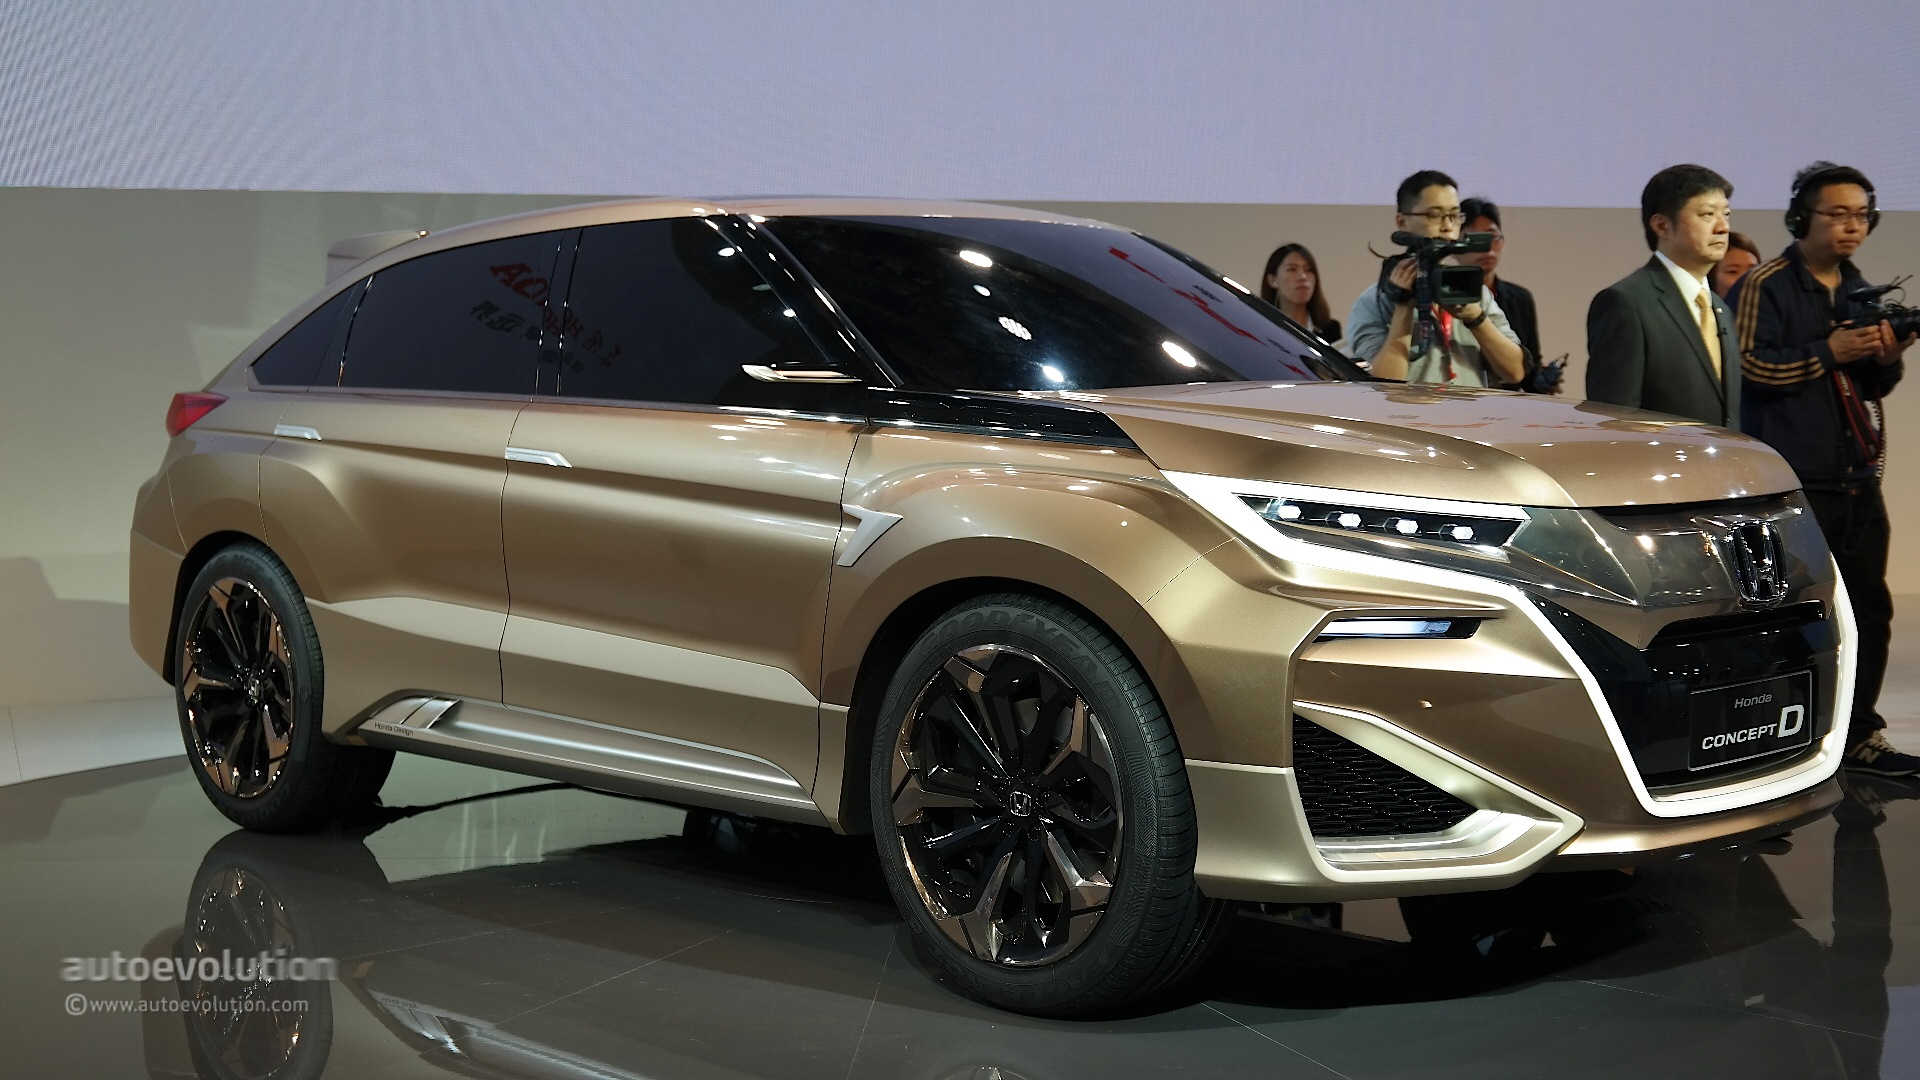 Dongfeng Honda Concept D Previews China-Only Crossover at Shanghai ...